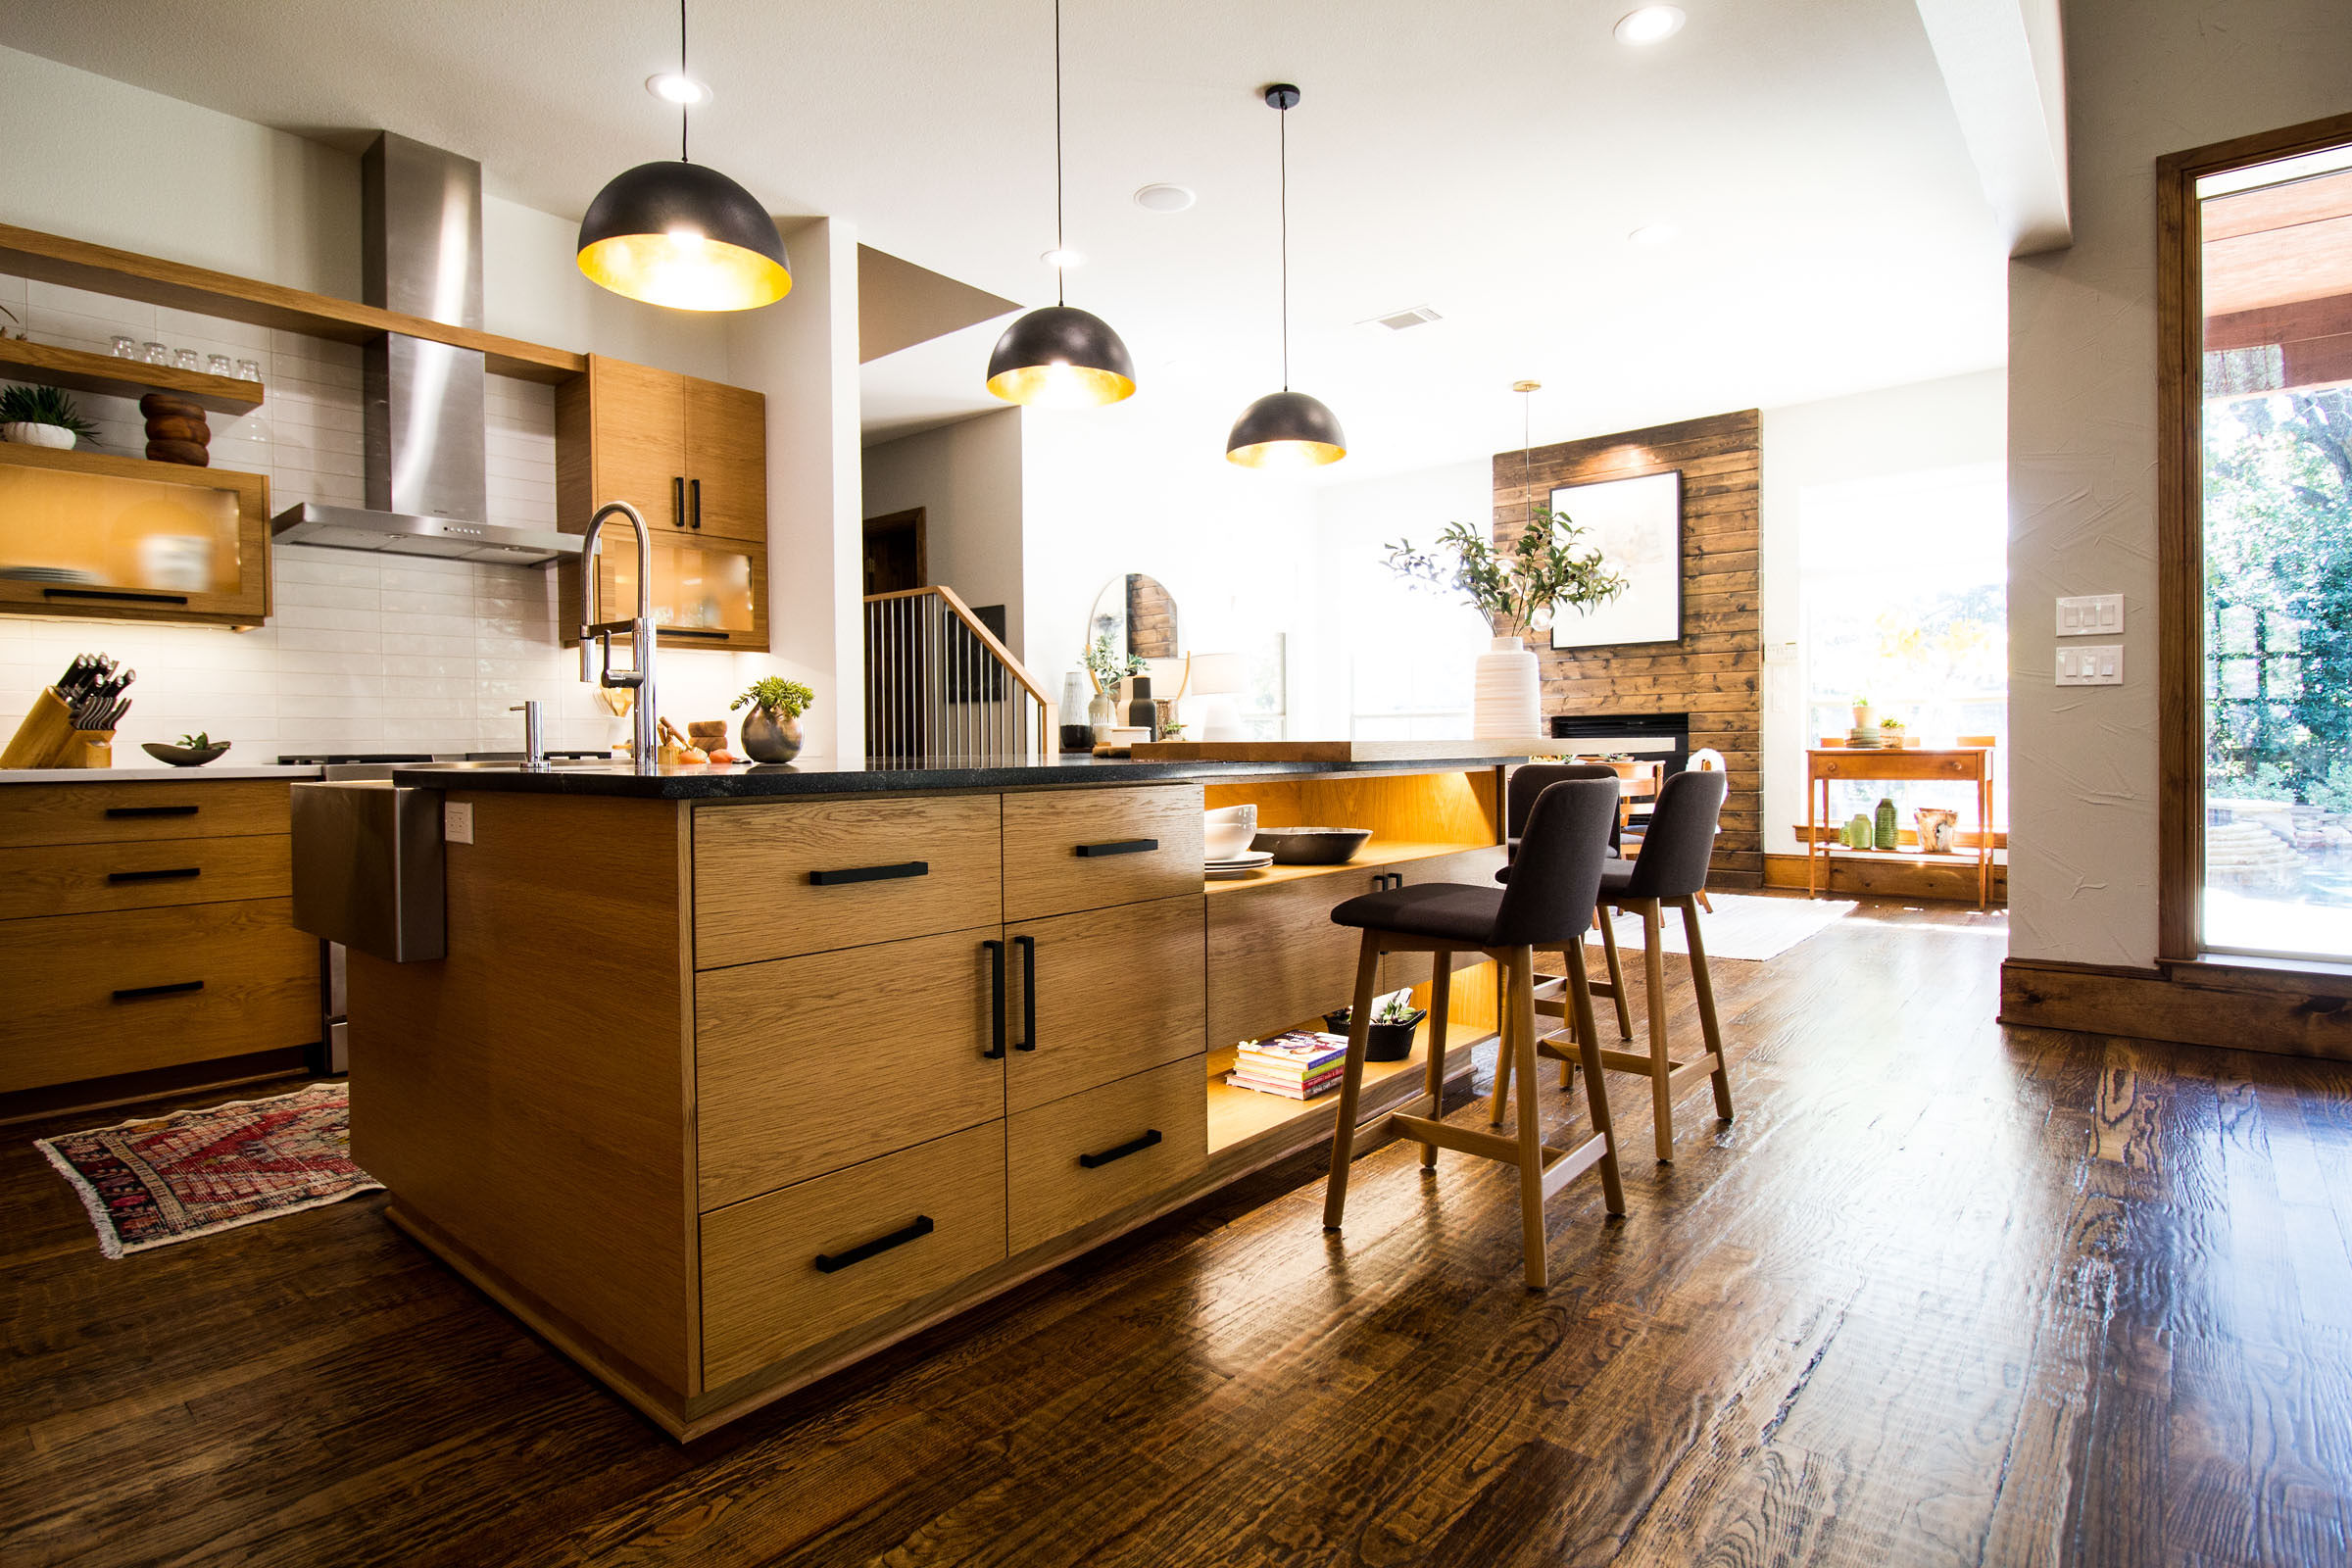 Full kitchen remodel with an open floor plan, hardwood floors, blonde wood cabinets, giant windows and fireplace.